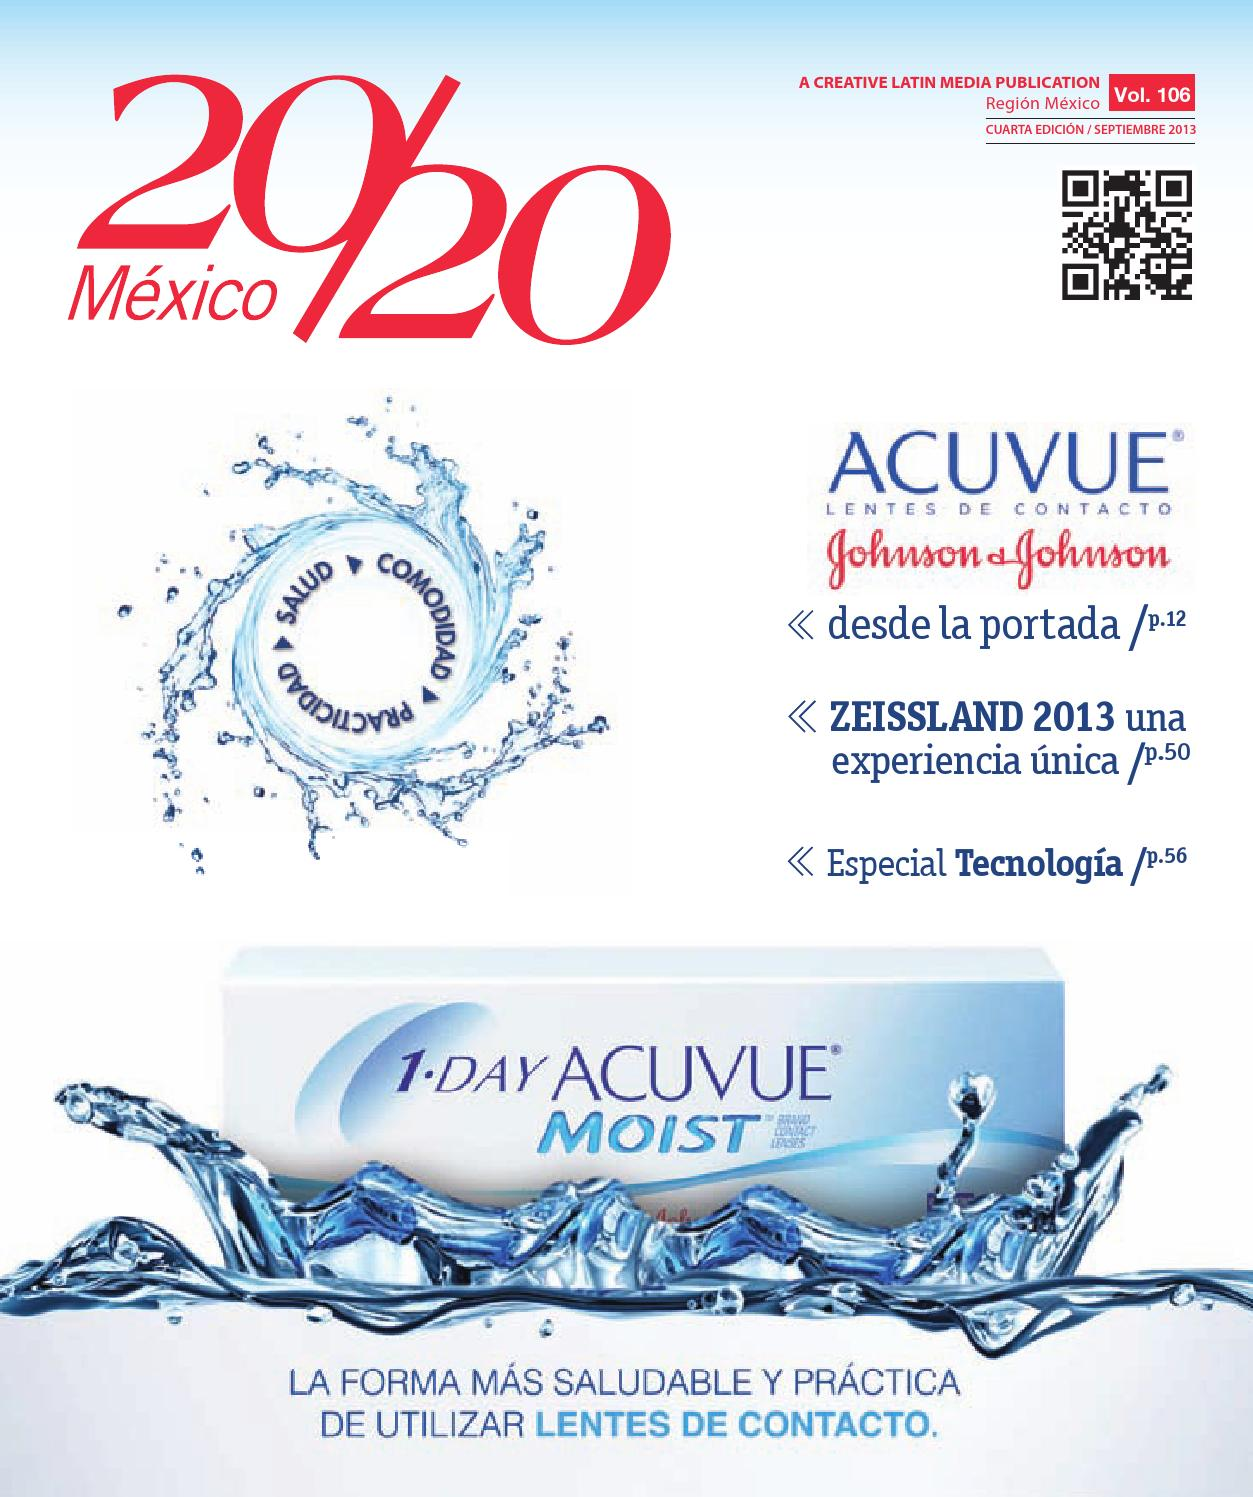 2020 mx 4ta 2013 by Creative Latin Media LLC - issuu